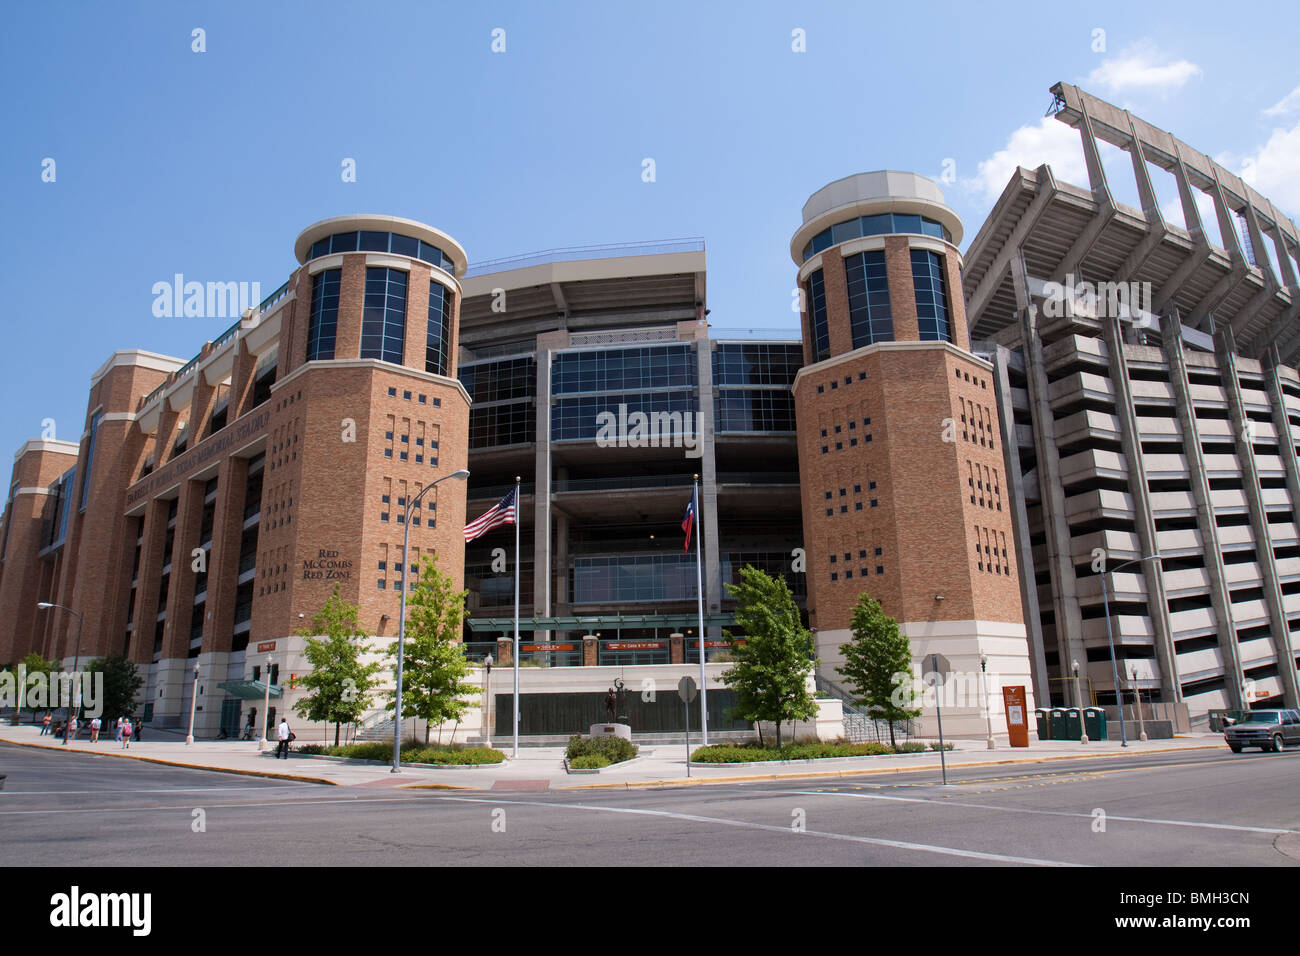 Outside of Darrell K Royal longhorn football stadium at University of Texas at Austin - Stock Image